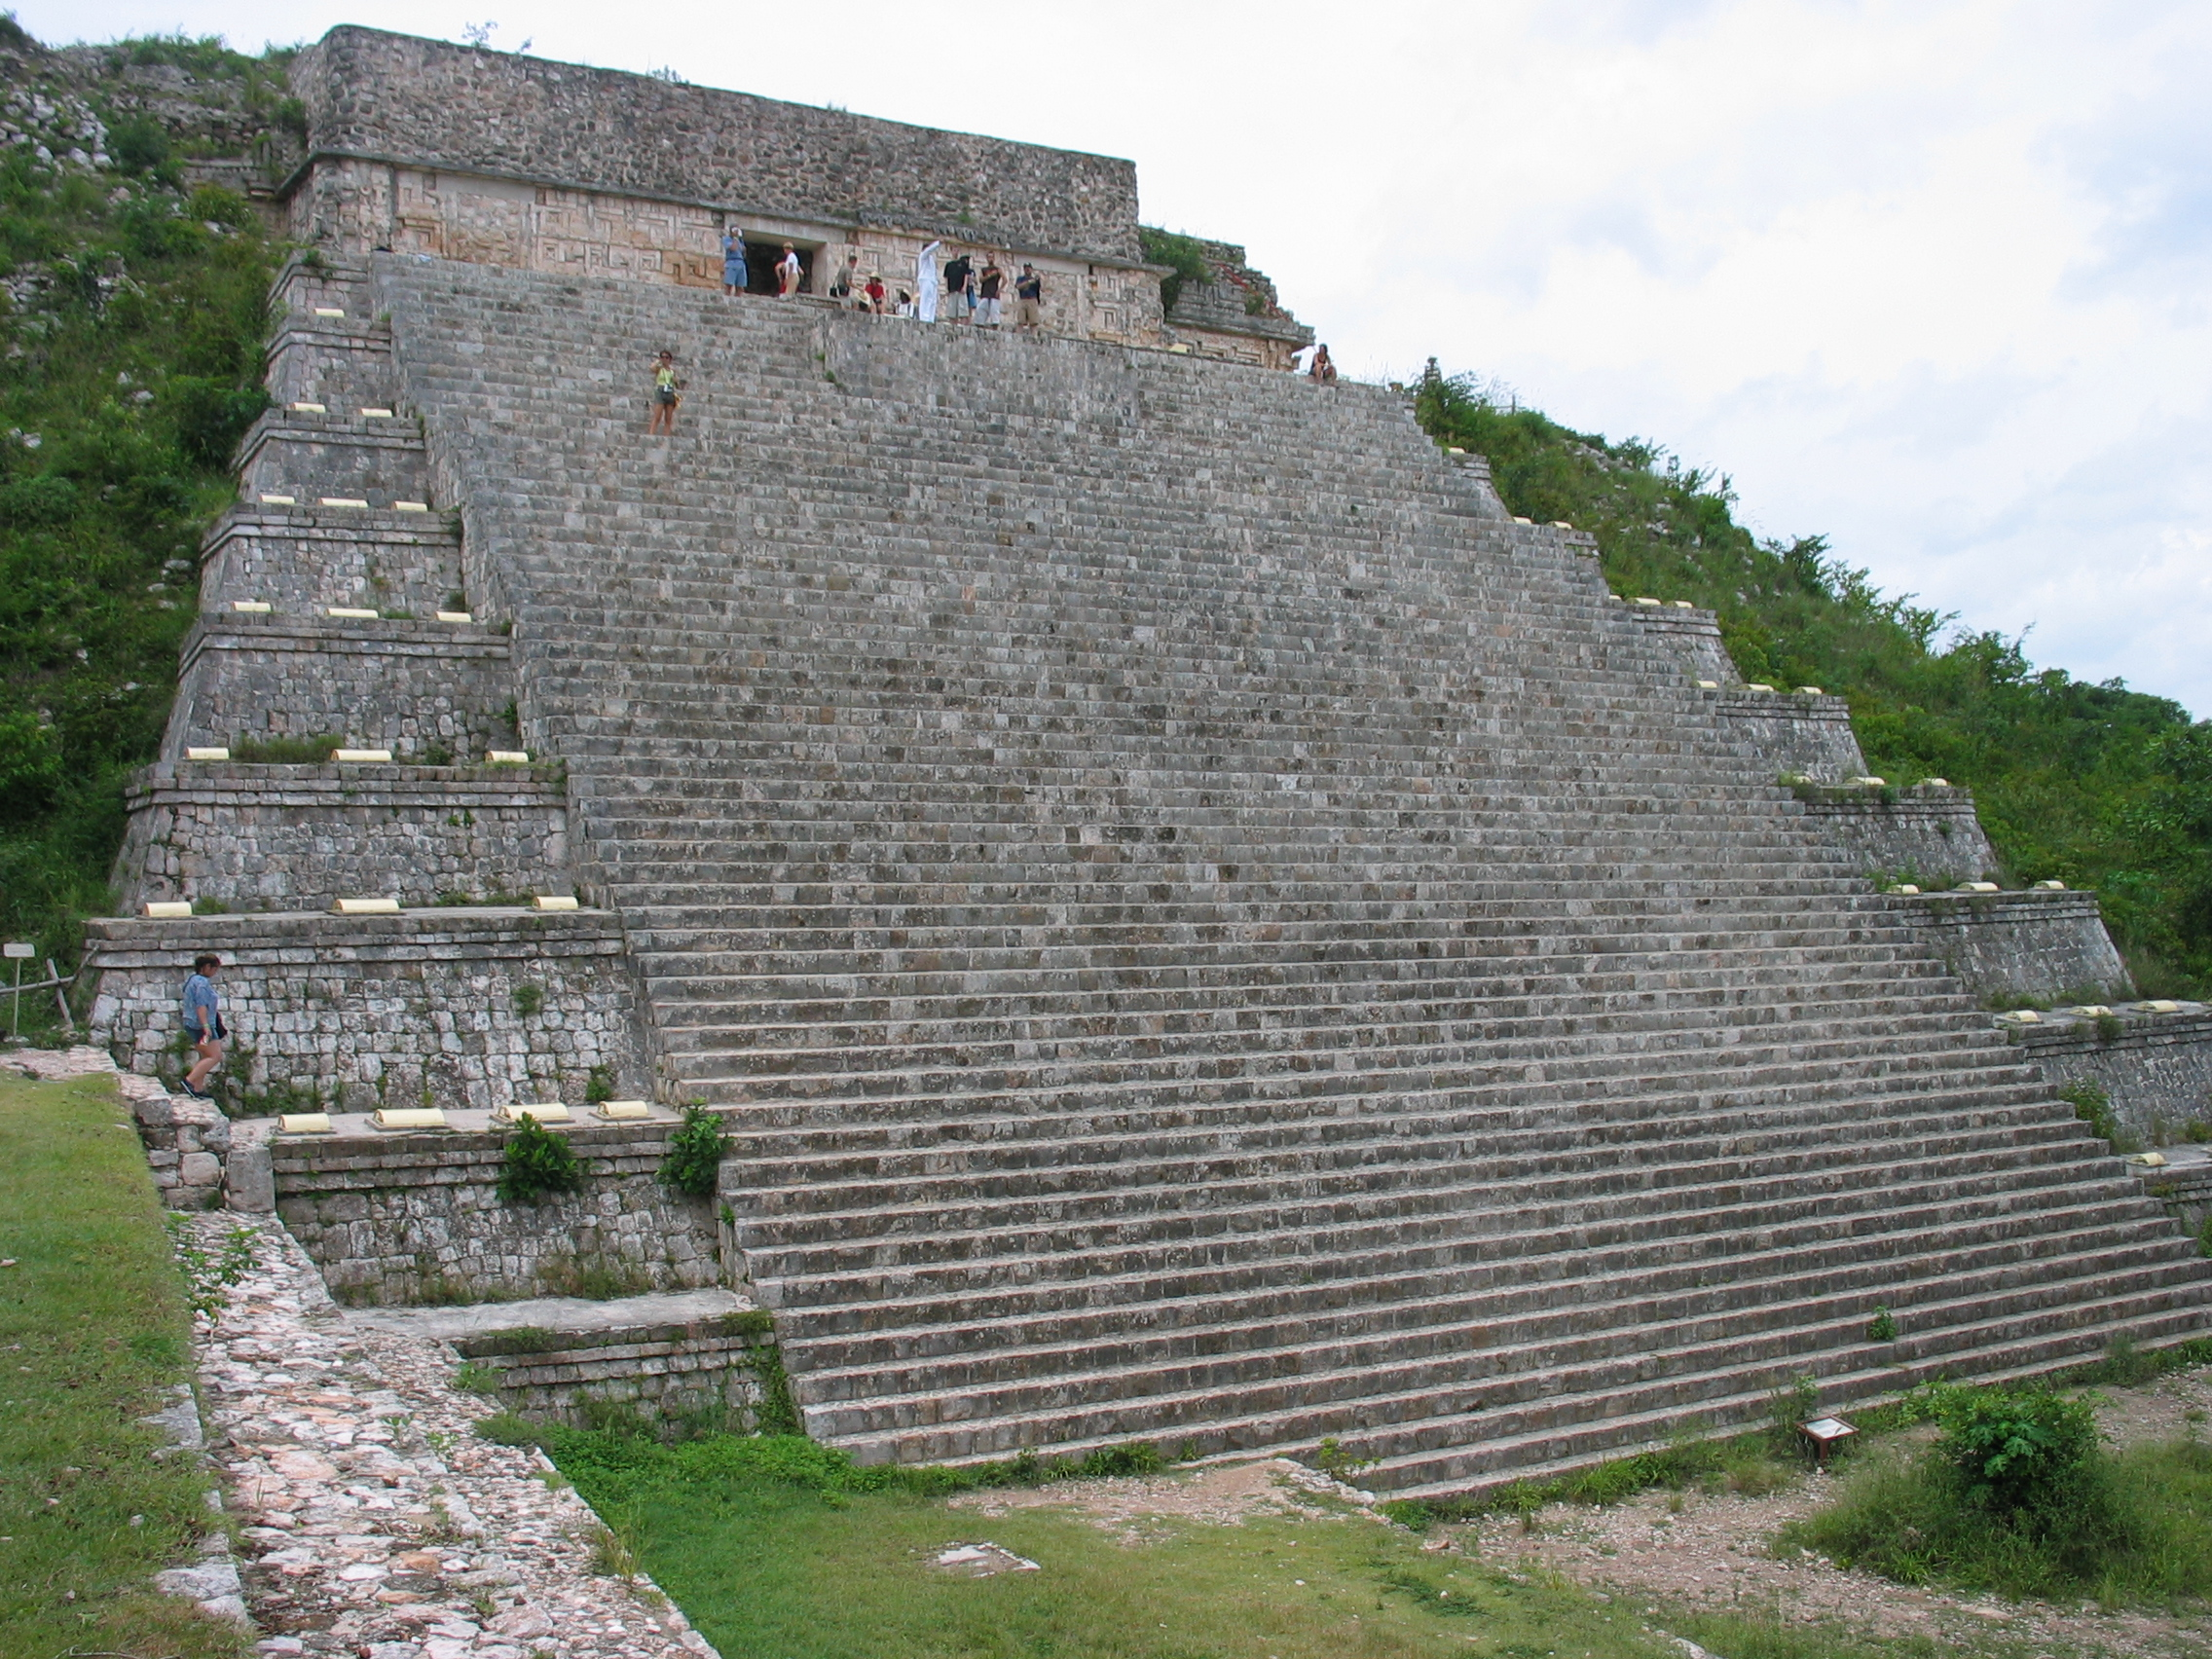 the mysteries of the ancient world in the case of egyptian and mexican pyramids Mysteries of the ancient world for many centuries people have been fascinated by ancient cultures and treasures during the last two centuries the science of archeology and modern inventions allowed people to get inside of the egyptian and mayan pyramids and discover the treasures of egyptian pharaohs and mayan rulers.